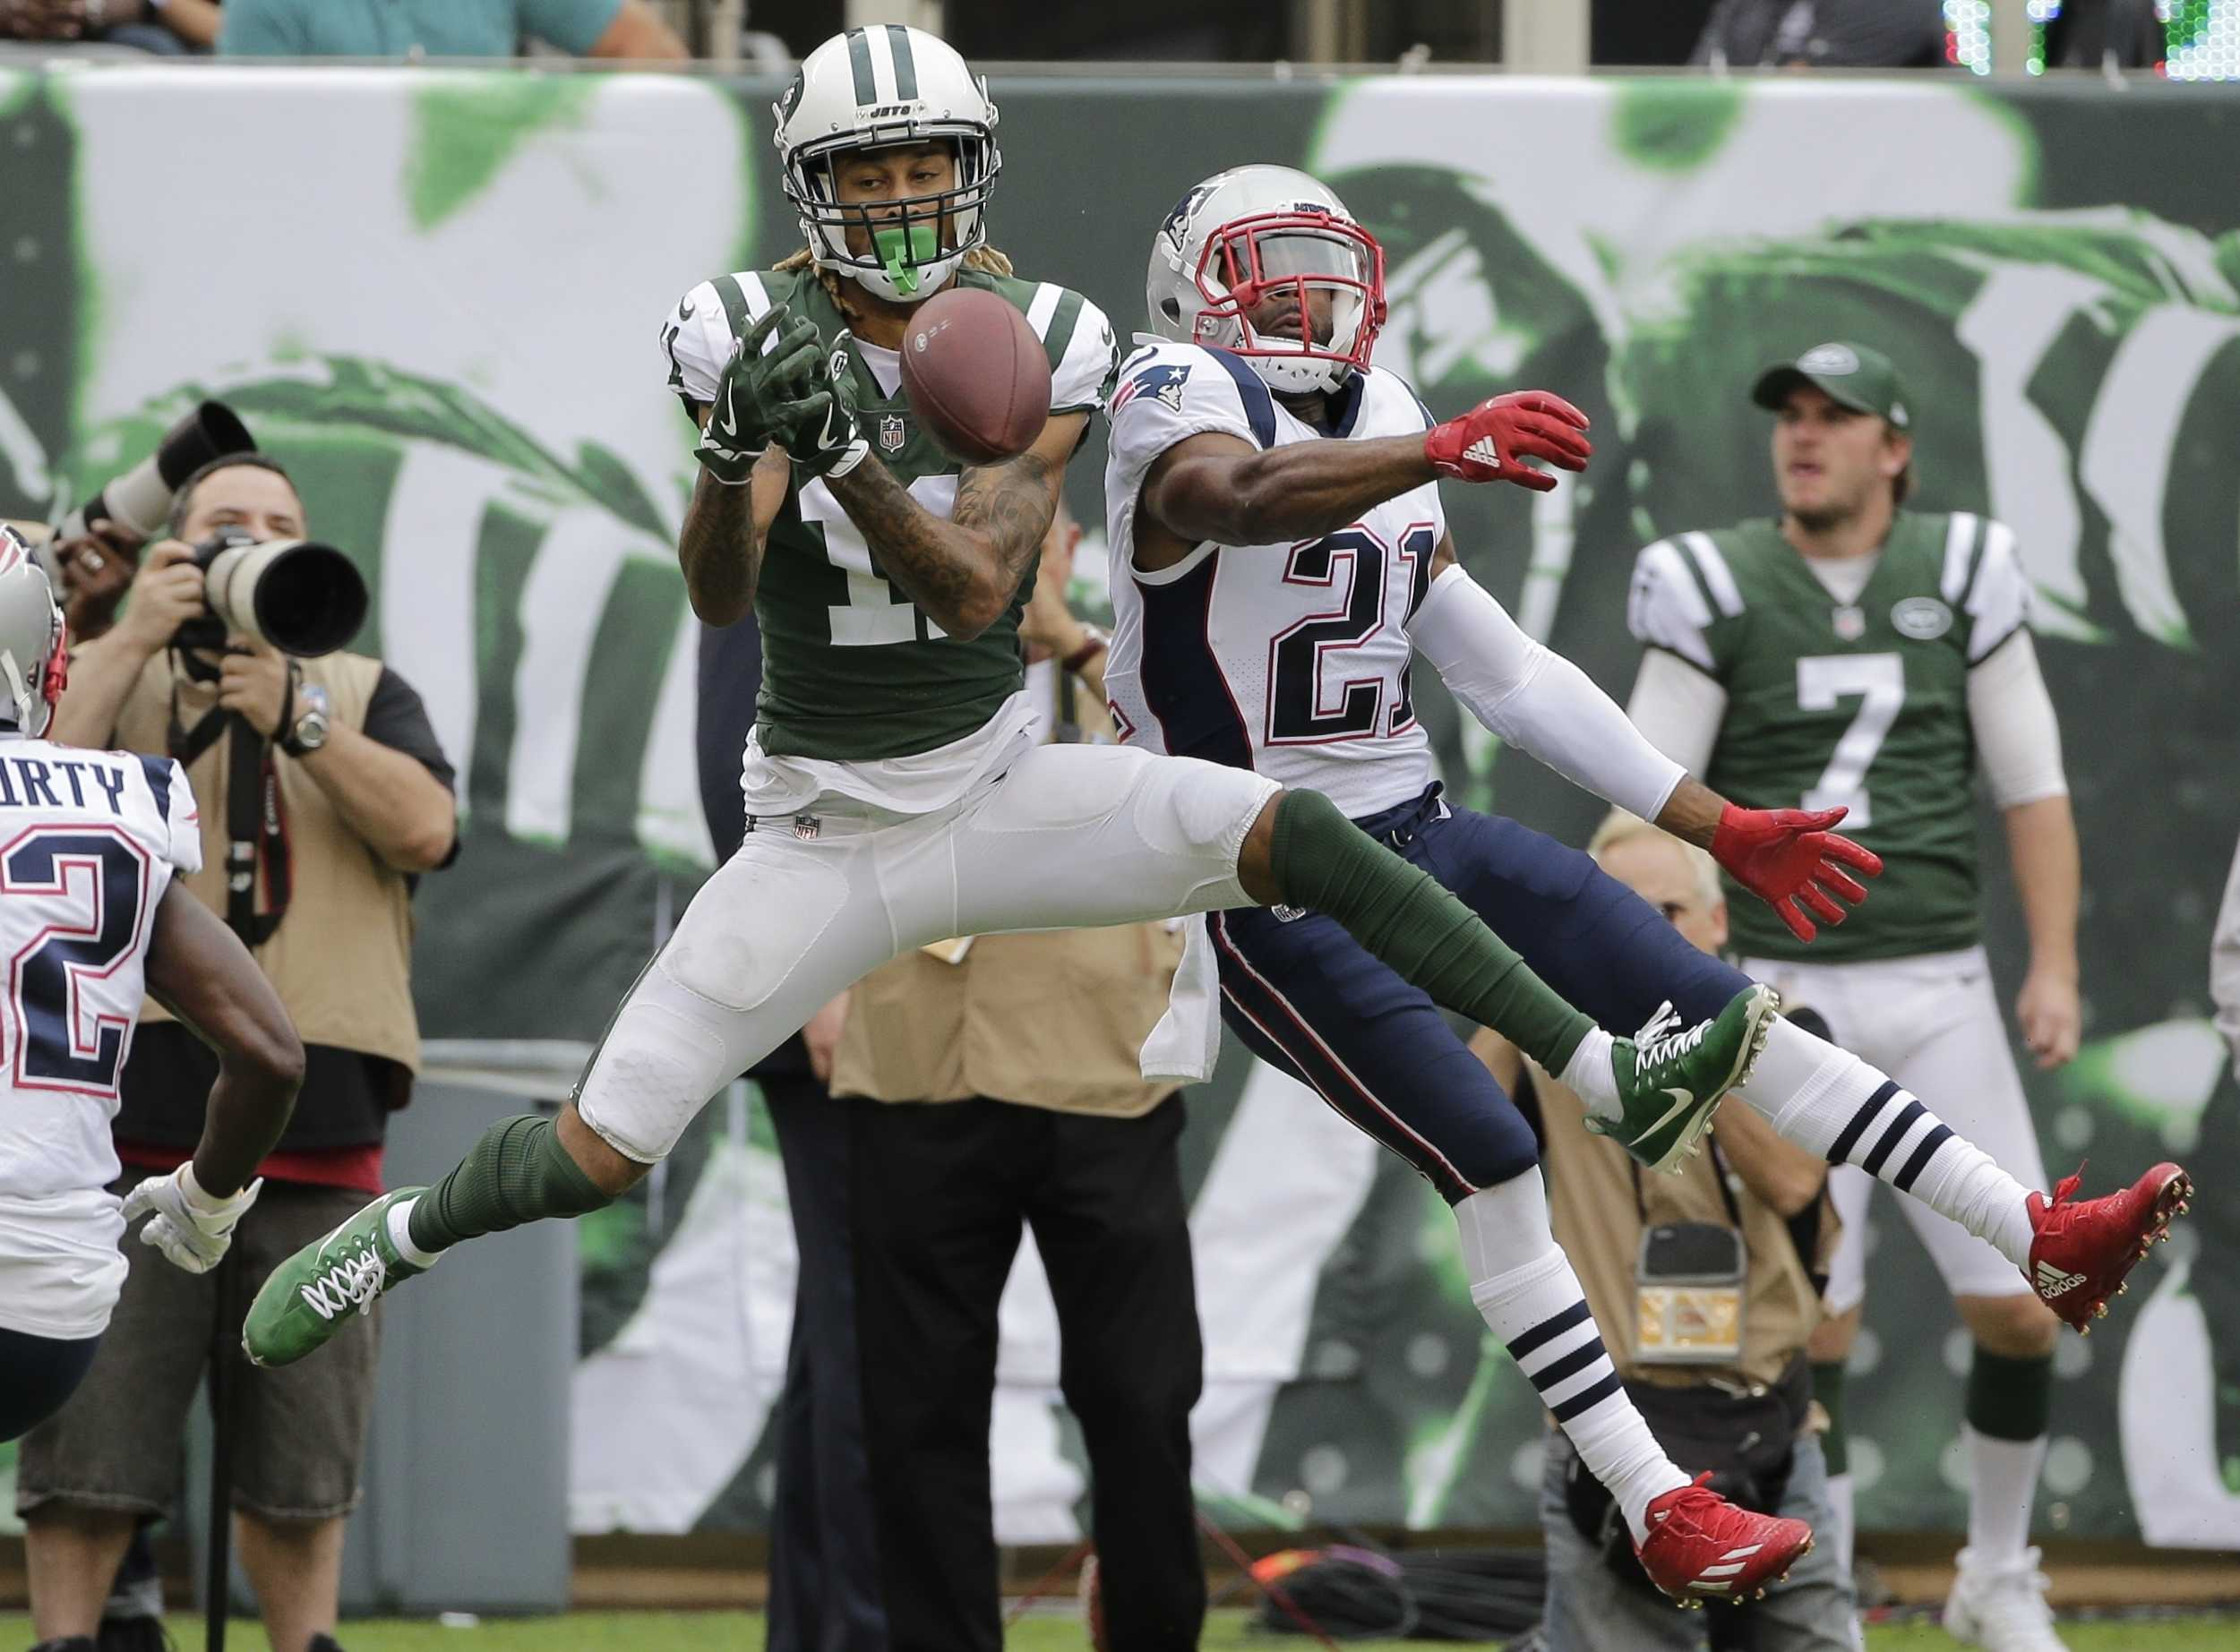 Robby Anderson Arrested on 9 Charges Including Resisting Arrest